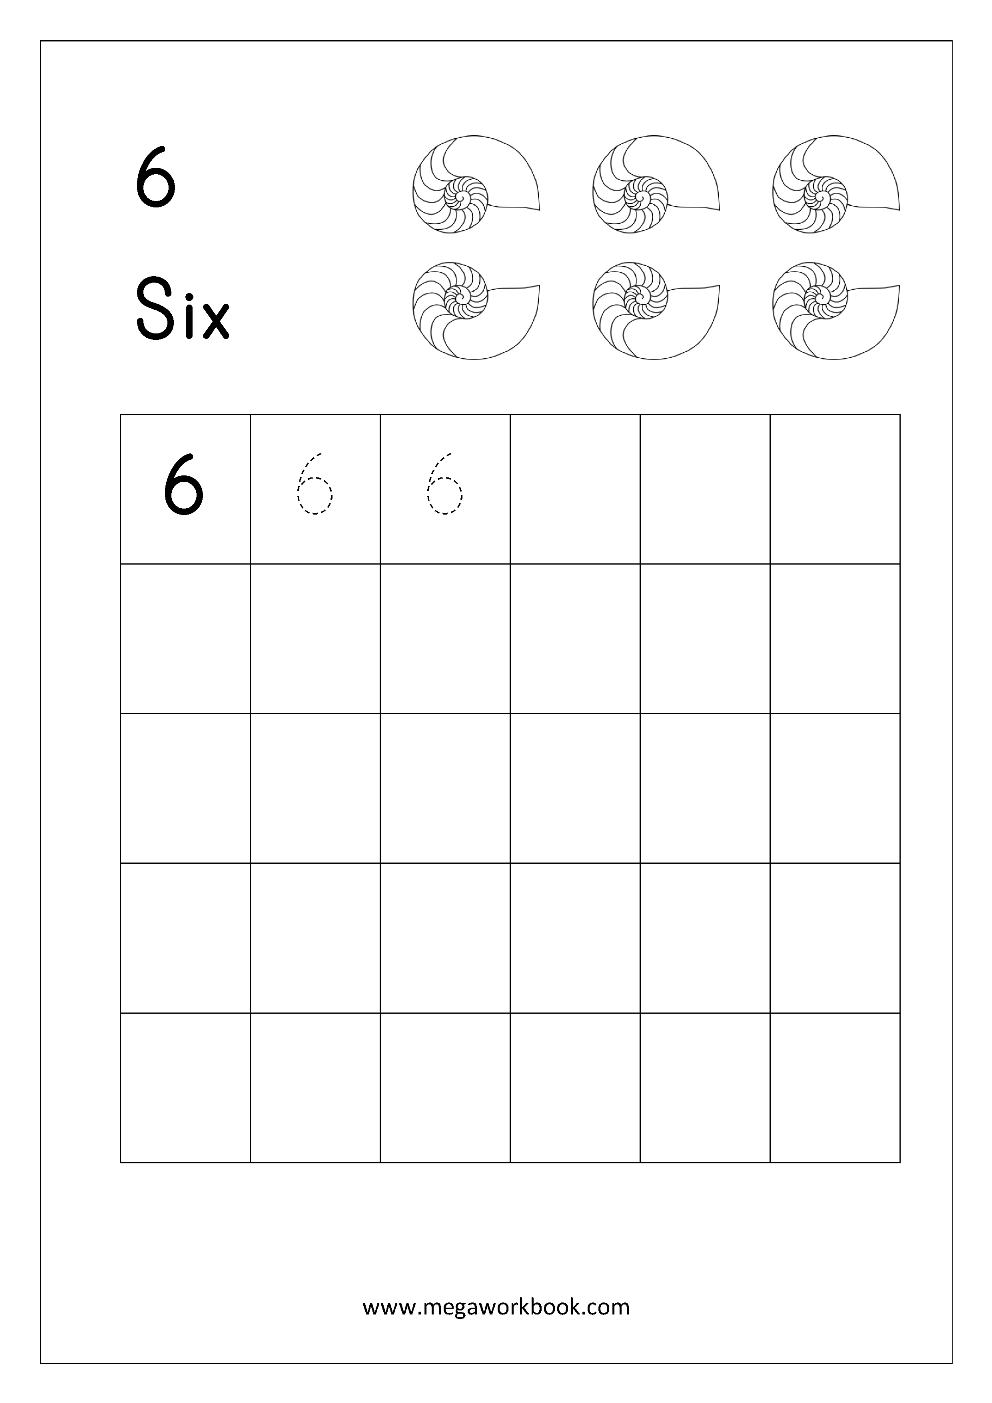 how to write a big number